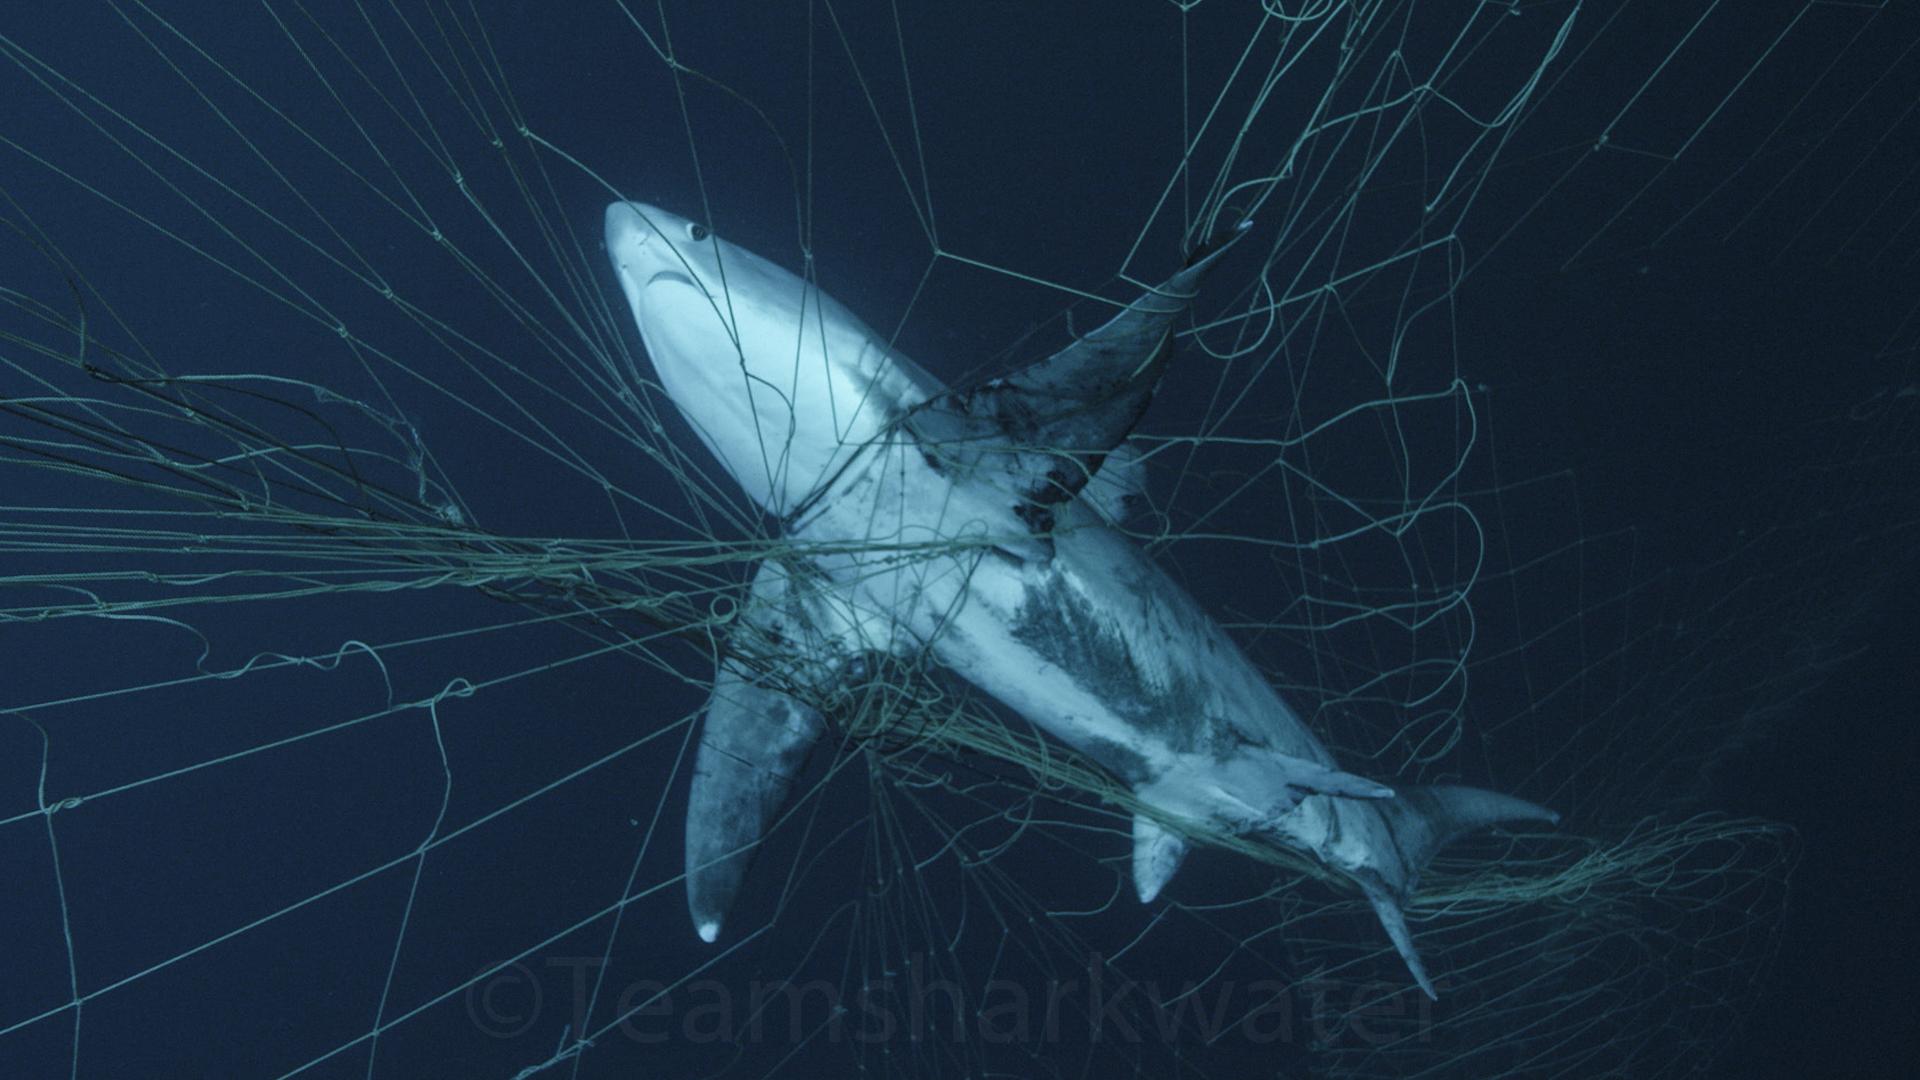 Senate Passes Bill to Protect Sea Turtles, Whales, Dolphins from Drift Gillnets